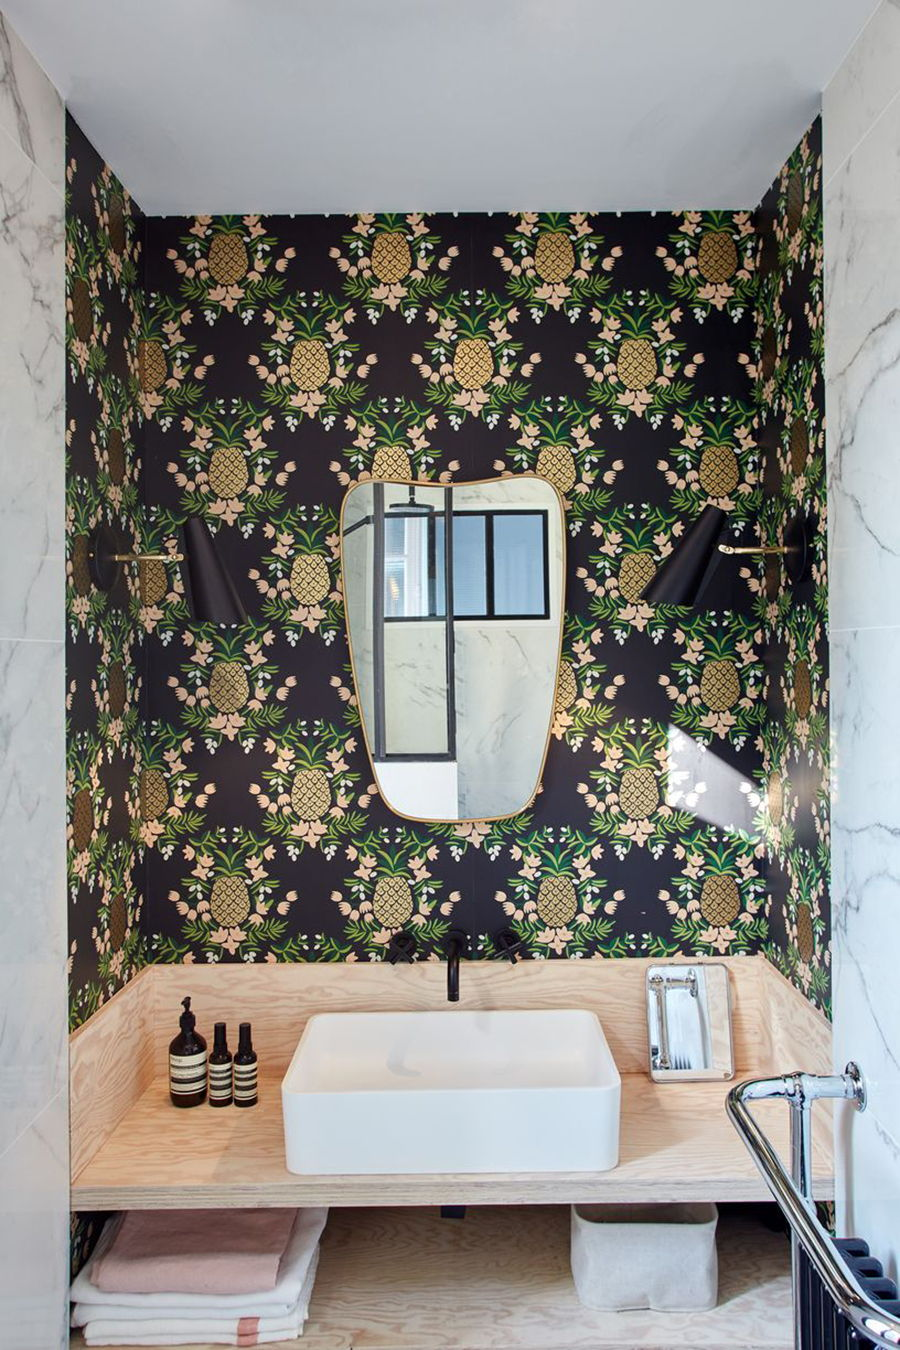 GCG Architects - Jean Jauré - patterned bathroom